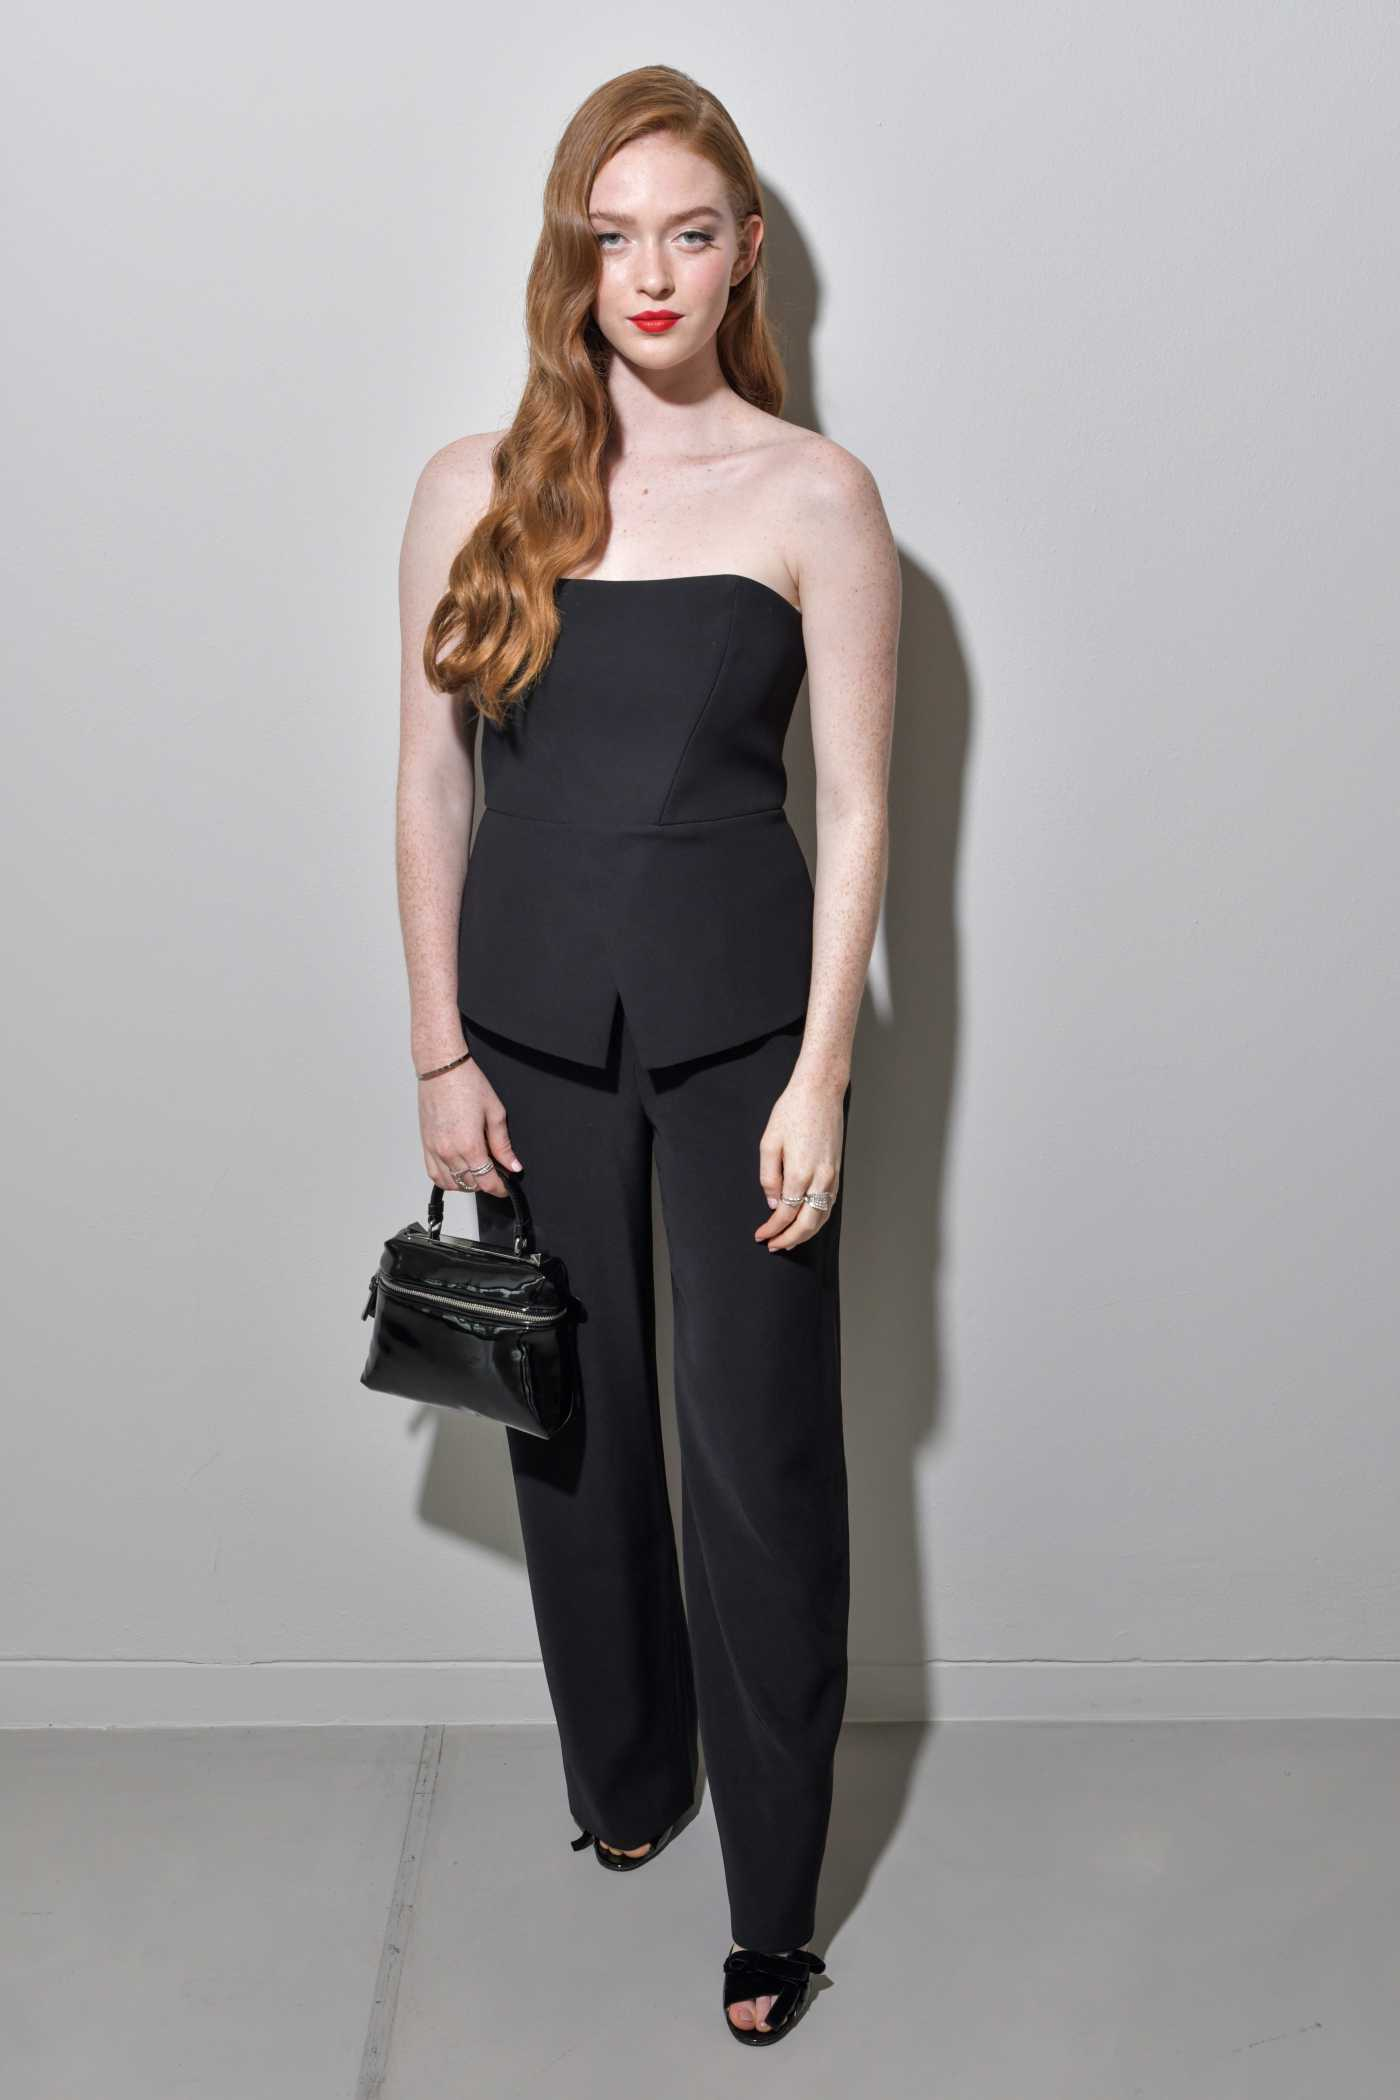 Larsen Thompson Attends the Emporio Armani Fashion Show During 2019 Milan Fashion Week in Milan 09/19/2019